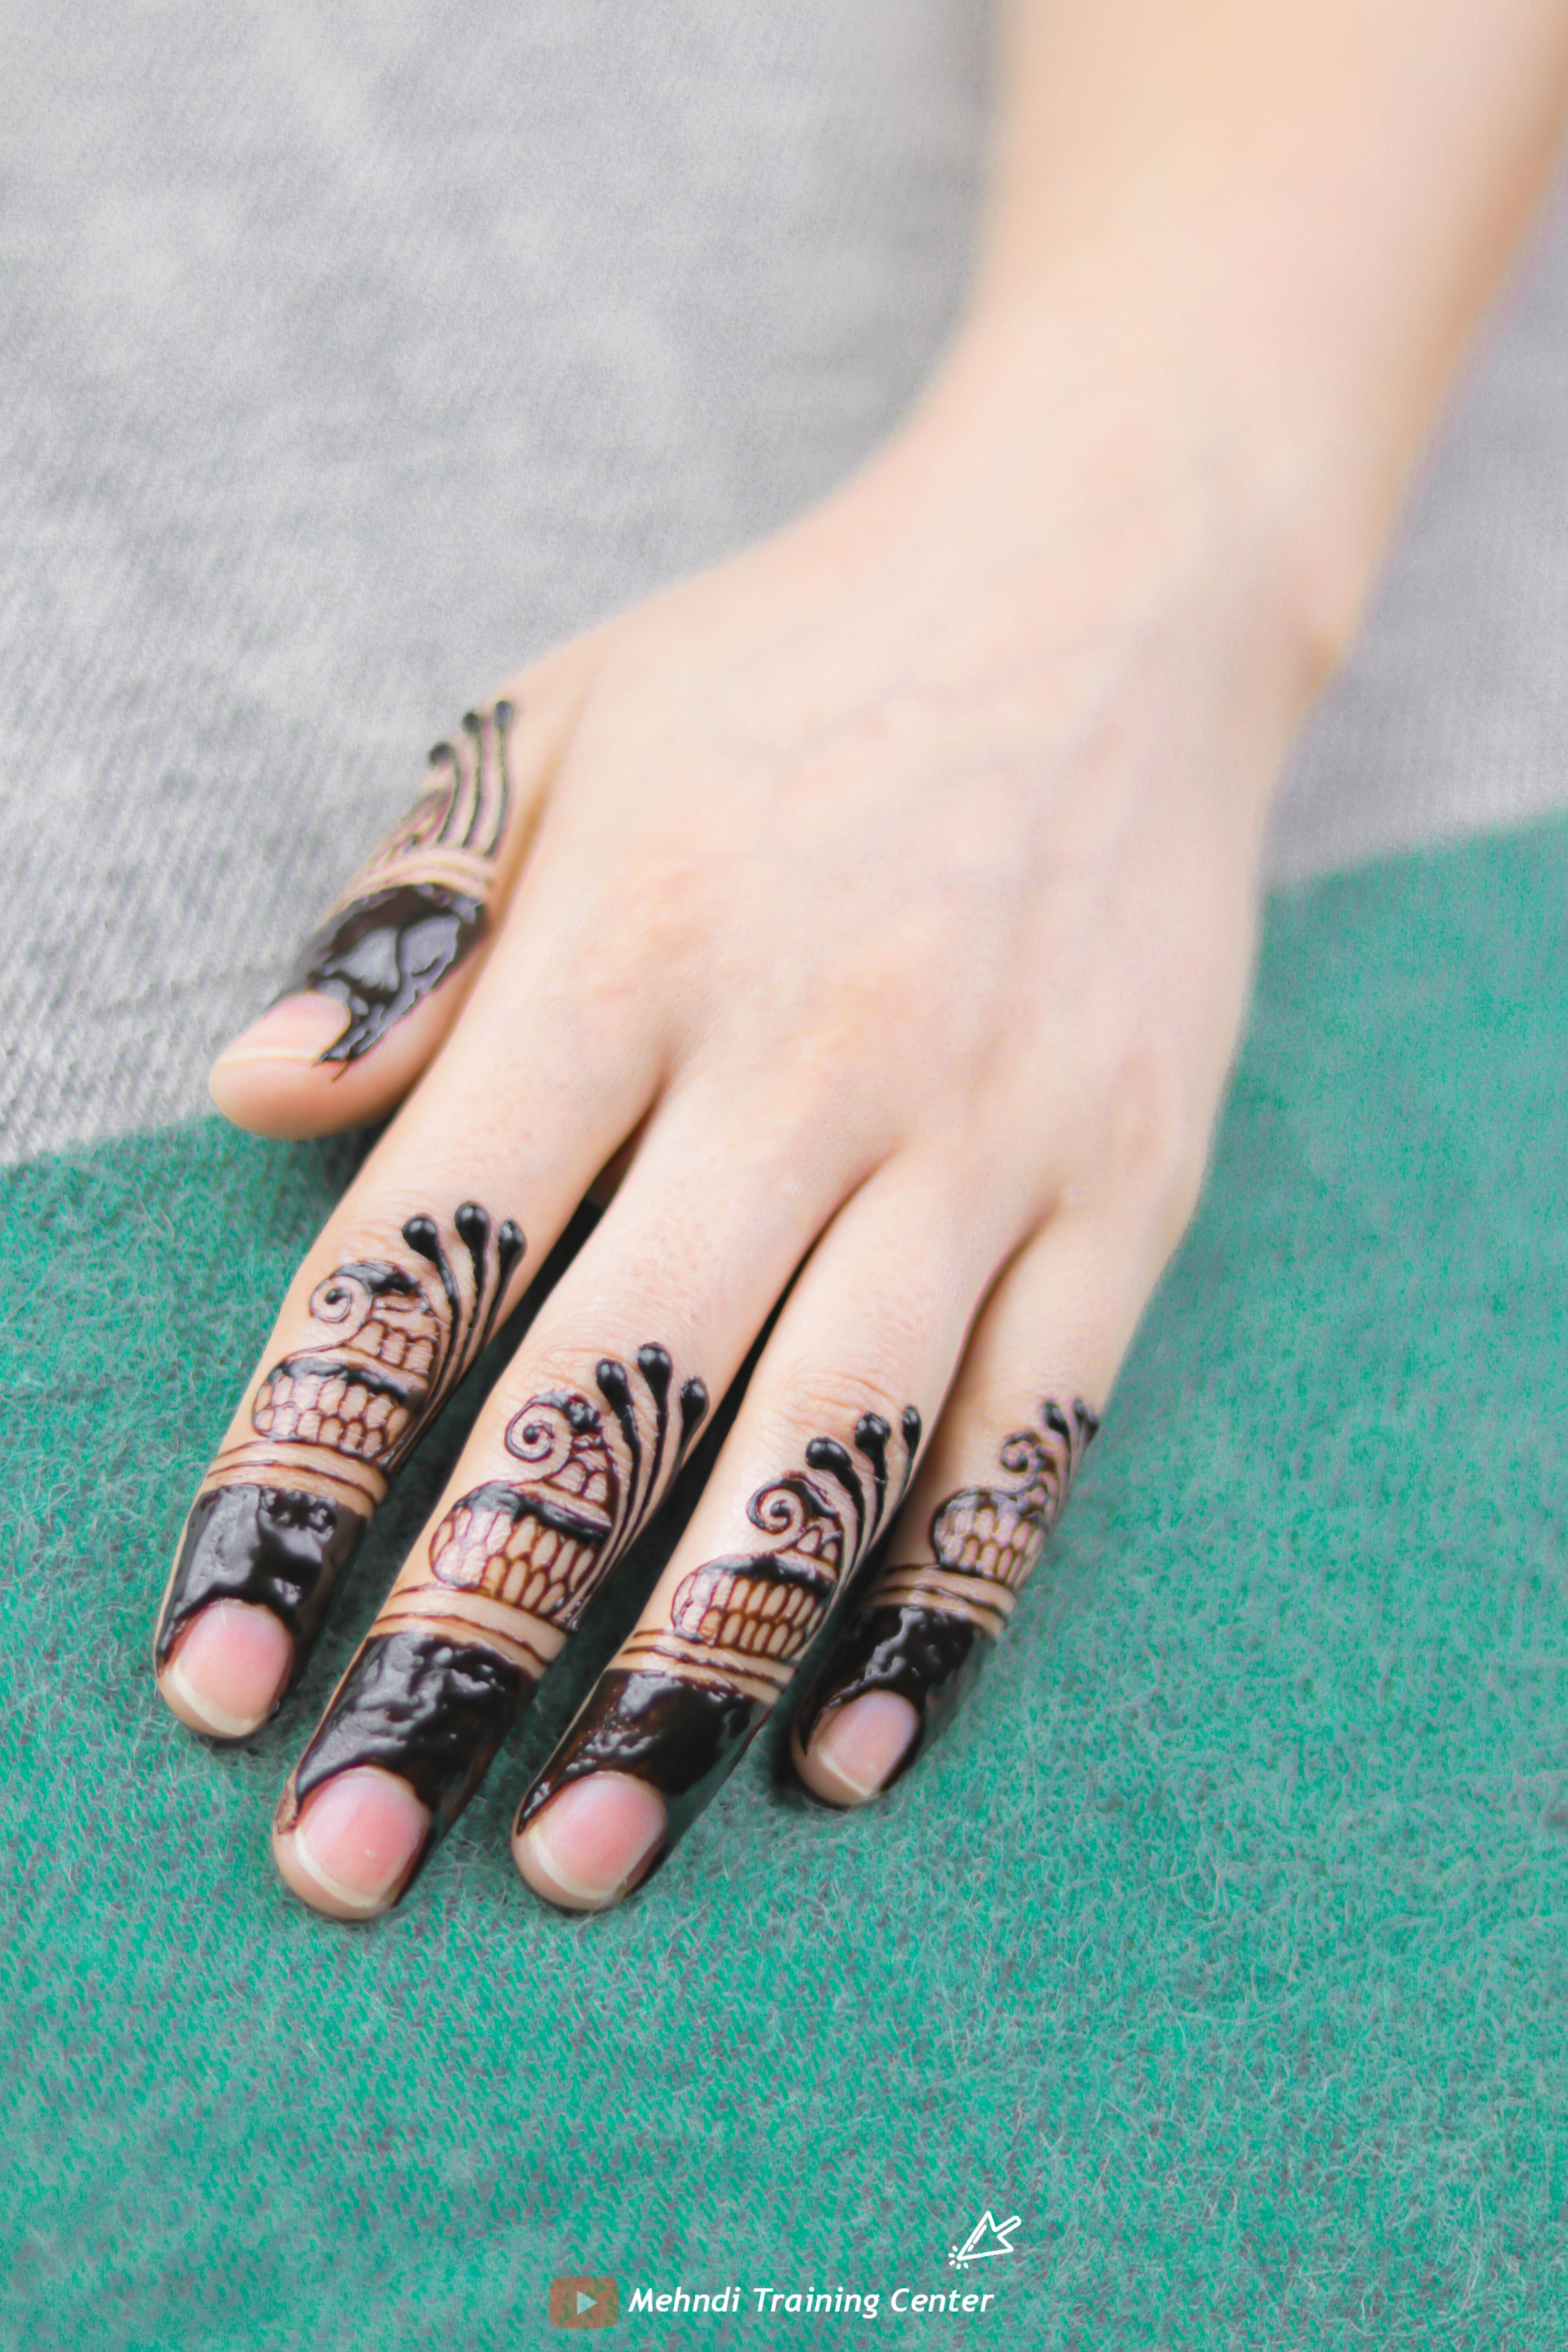 Most Beautiful Simple Finger Mehndi Design For Eid Eid Mehndi Video Eid Ke Liye Mehndi Design Mehndi Designs For Fingers Eid Mehndi Designs Mehndi Video